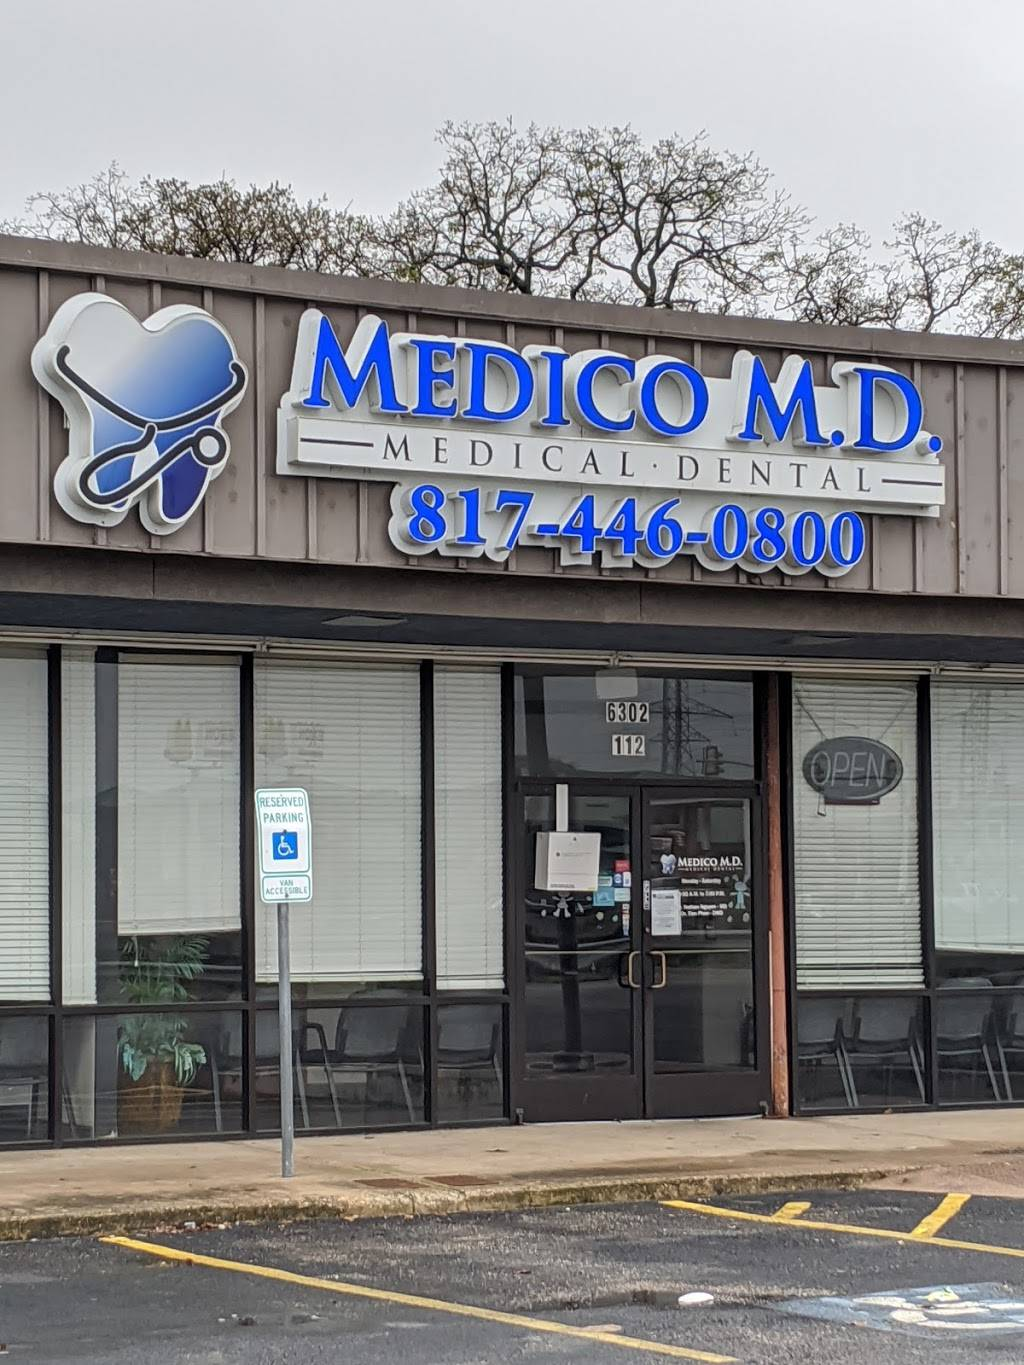 Medico M.D. Medical and Dental - dentist  | Photo 2 of 3 | Address: 6302 Meadowbrook Dr Suite 112, Fort Worth, TX 76112, USA | Phone: (817) 446-0800